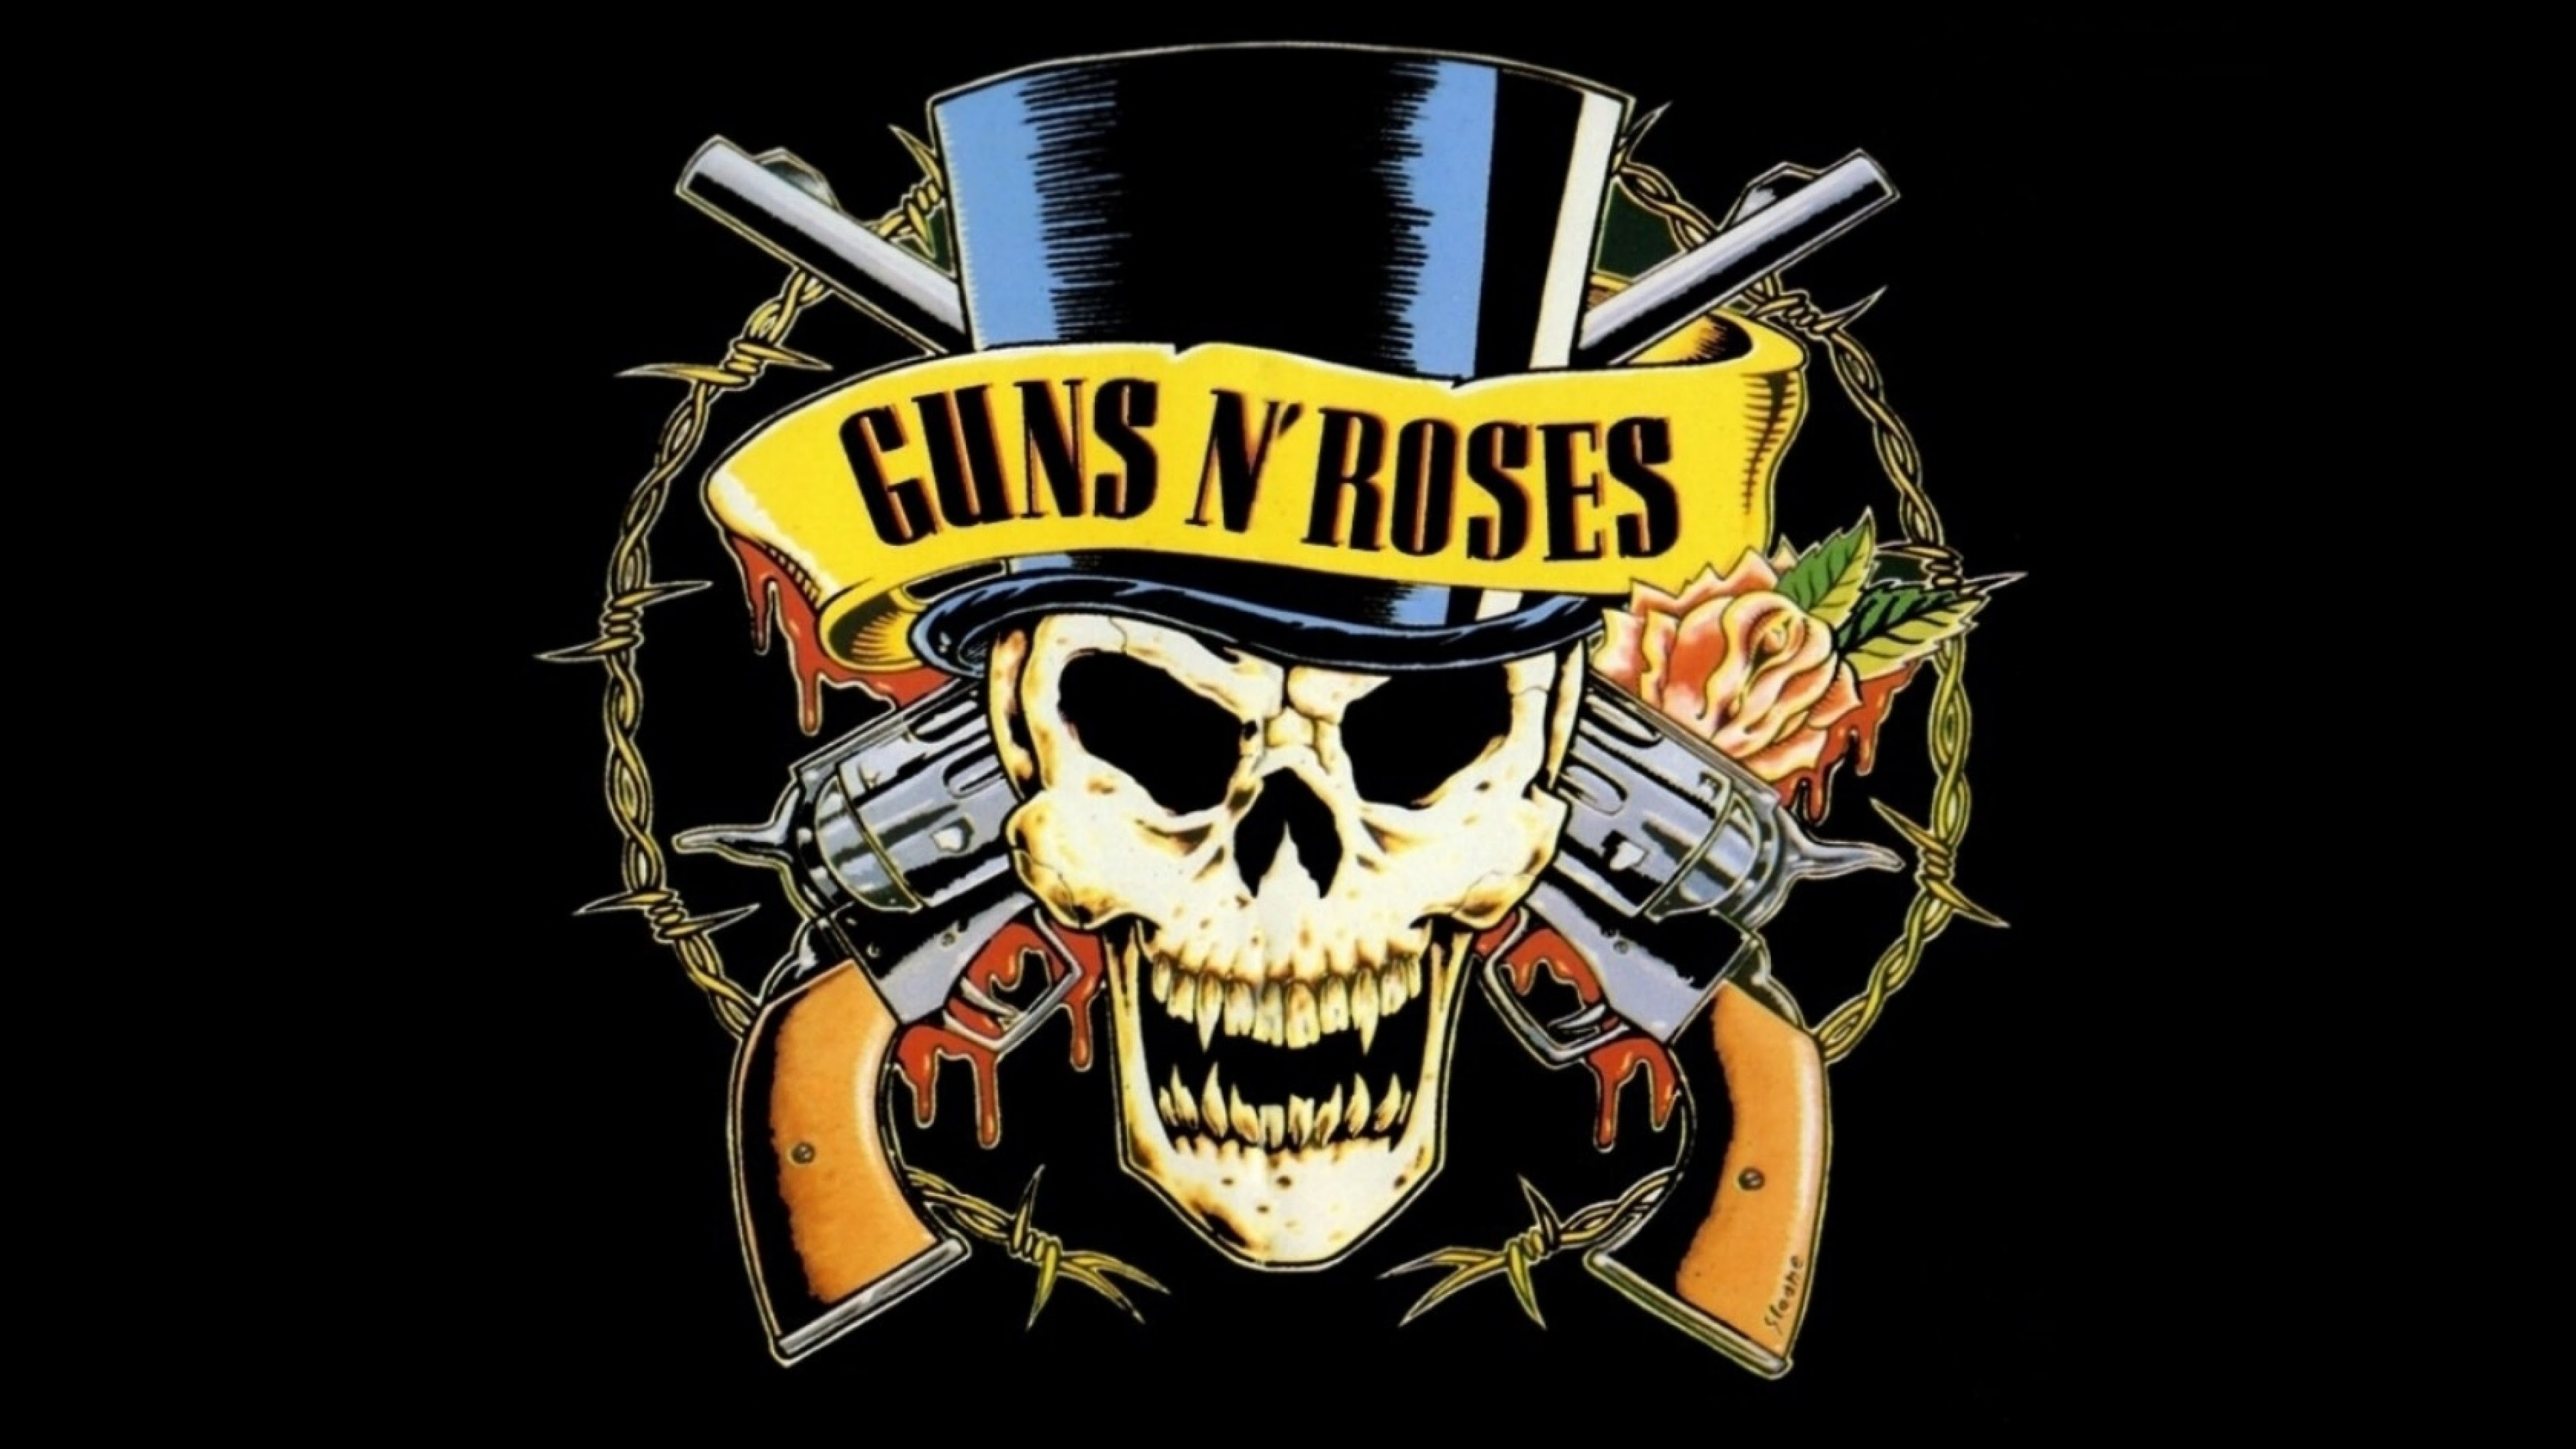 Guns N Roses Iphone Wallpaper 57 Images